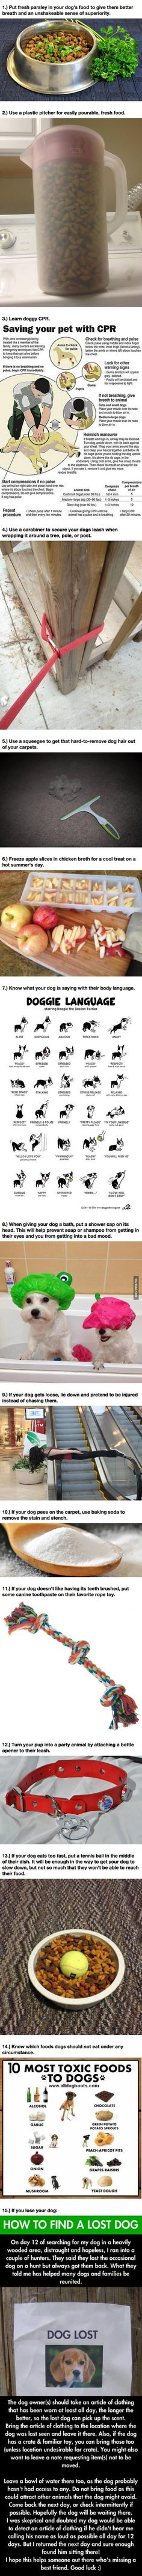 Great tips for dog owners! These ideas let your dog have a better experience and make your life a little easier. Good to know and easy to start doing!